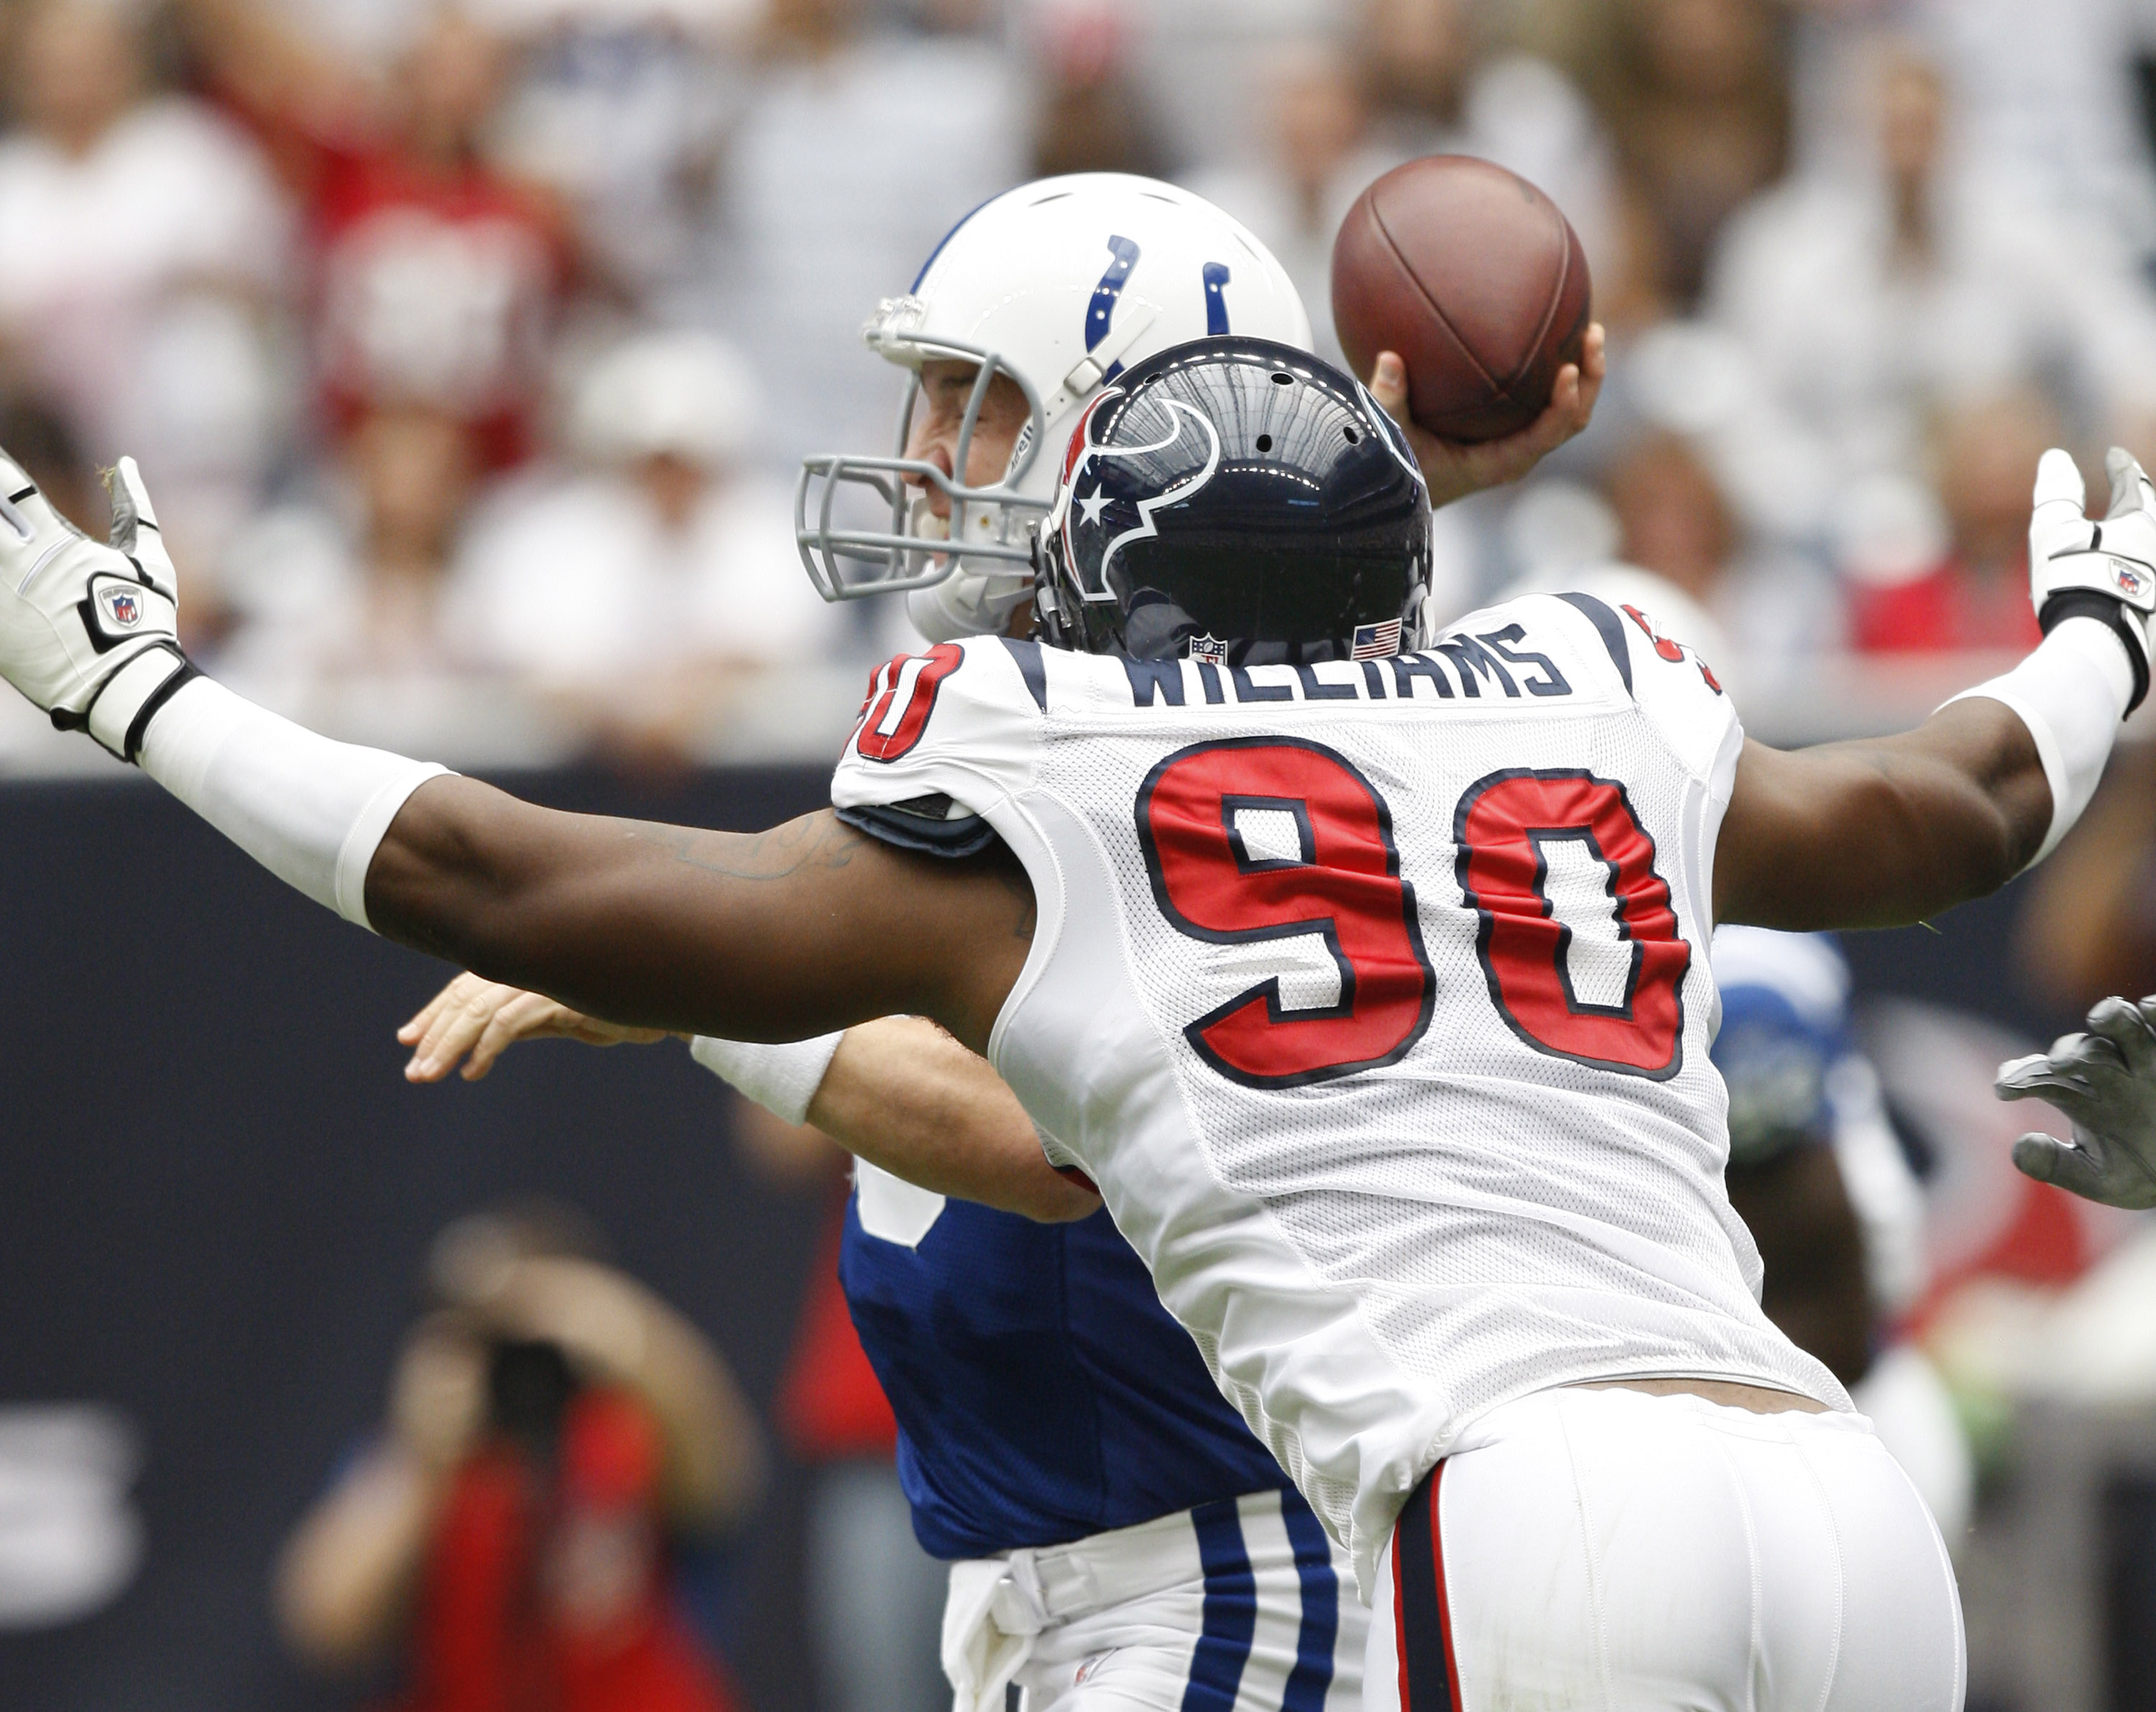 HOUSTON - SEPTEMBER 12:  Defensive end Mario Williams #90 of the Houston Texans applies pressure to quarterback Peyton Manning #18 of the Indianapolis Colts  during the NFL season opener at Reliant Stadium on September 12, 2010 in Houston, Texas.  (Photo